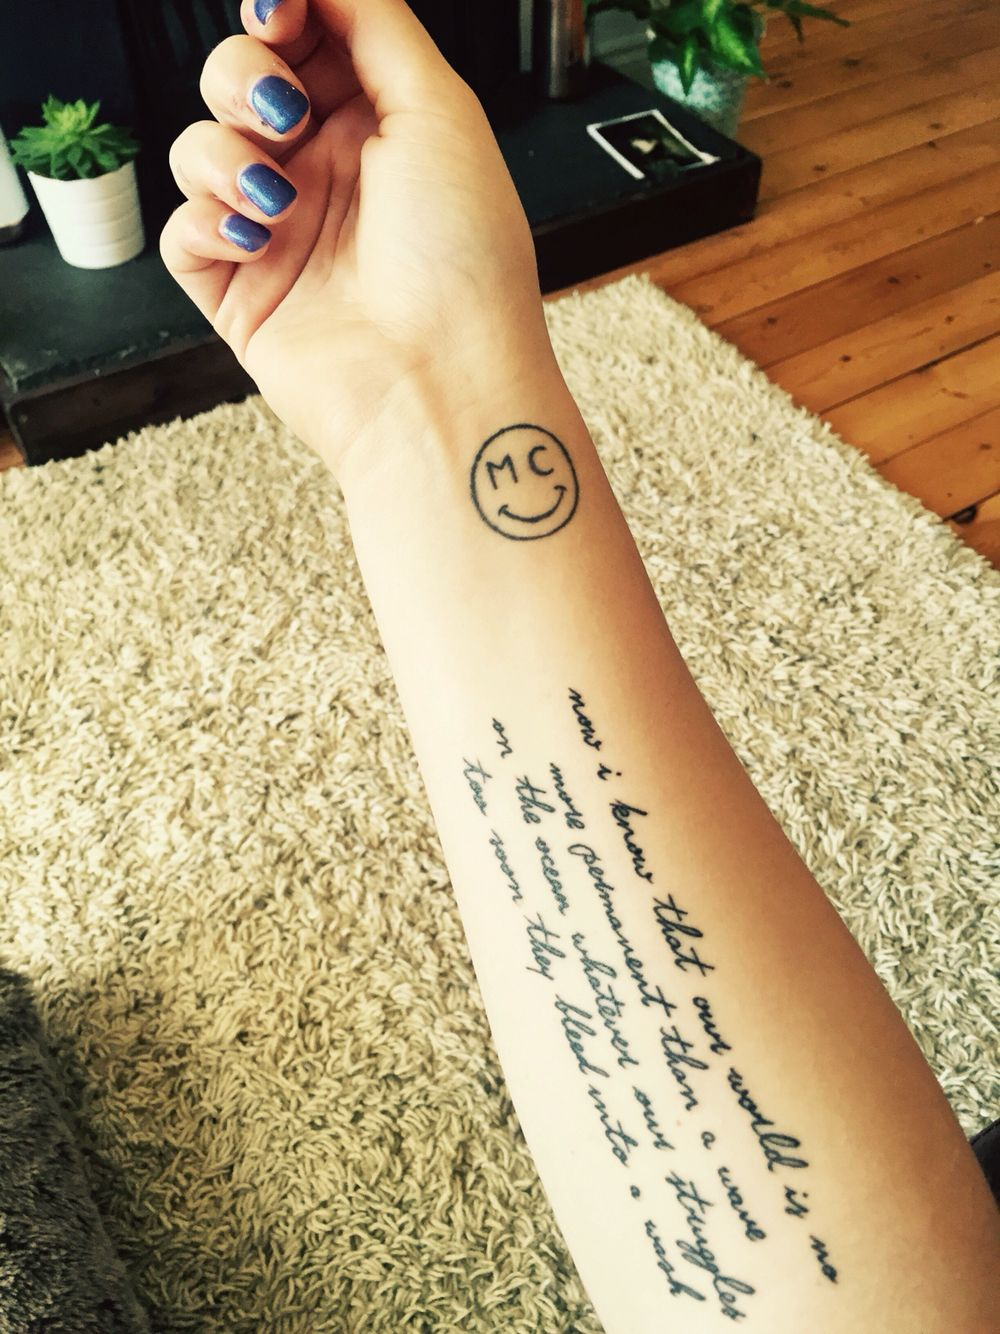 Now I Know That Our World Is No More Permanent Than A Wave On The Ocean Whatever Our Struggles Too Soon They Bleed In Long Quote Tattoo Tattoos Miley Tattoos